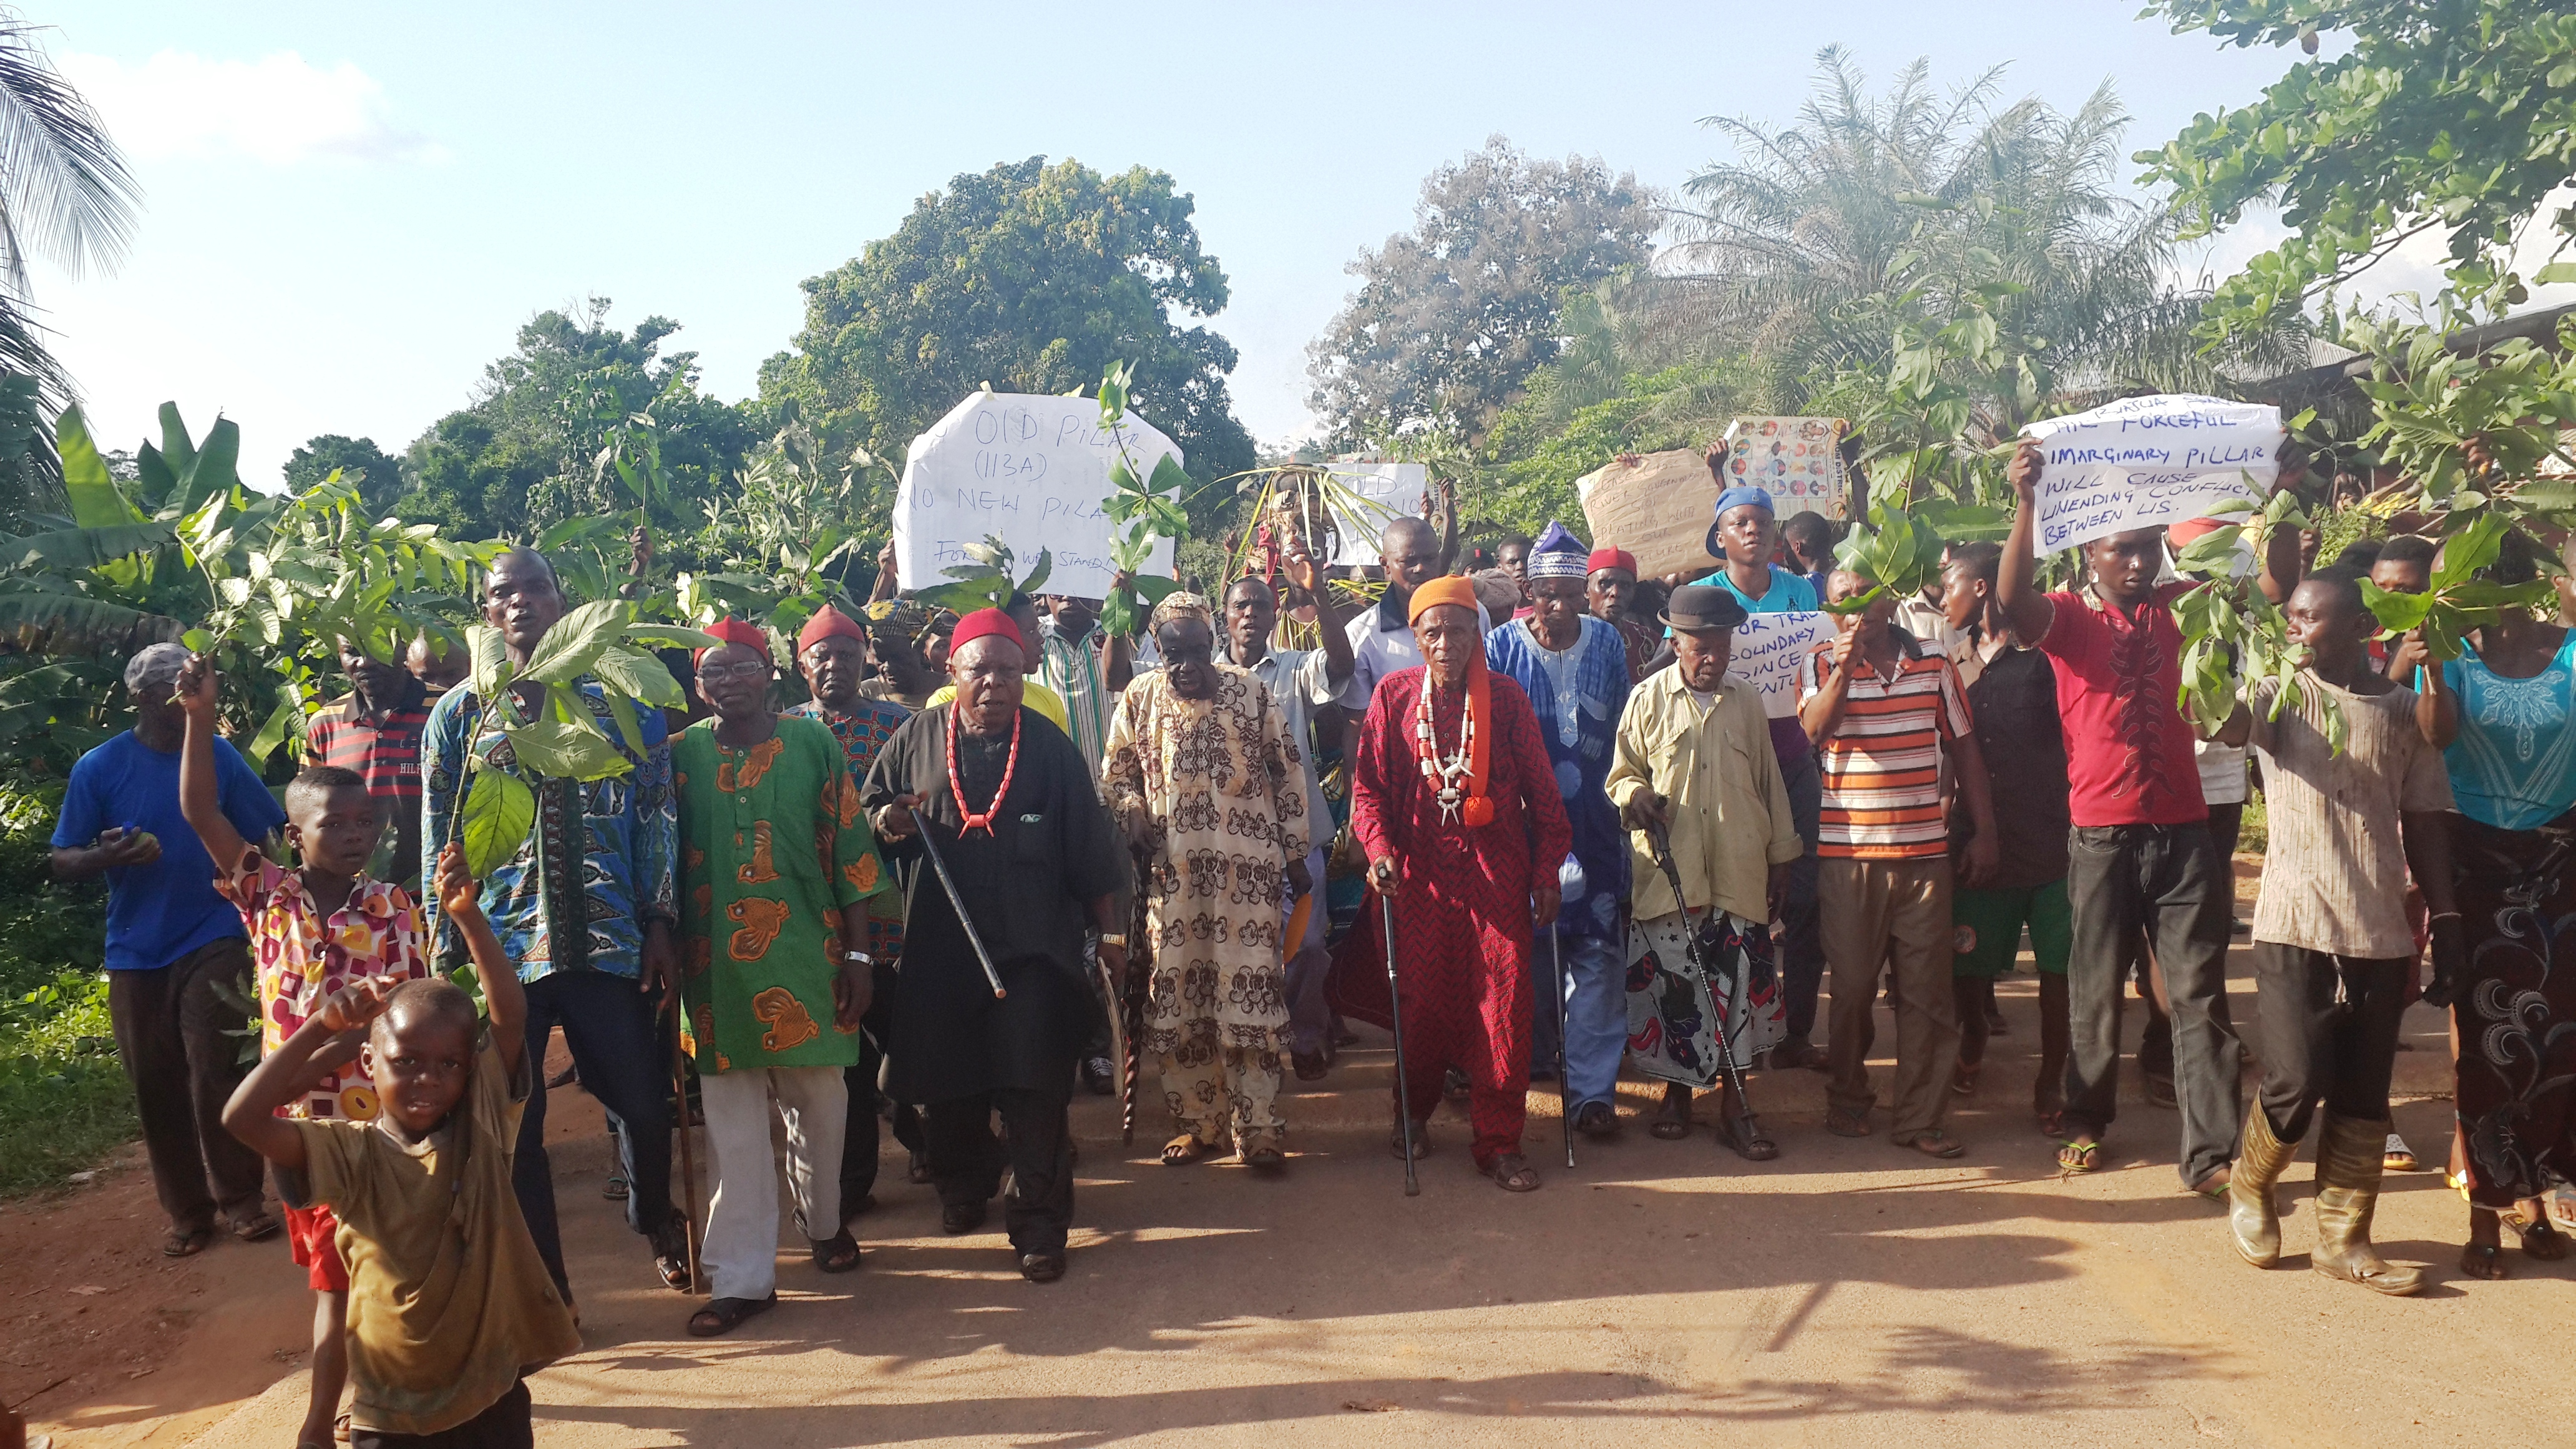 90 year old village head leading Danare people in protest